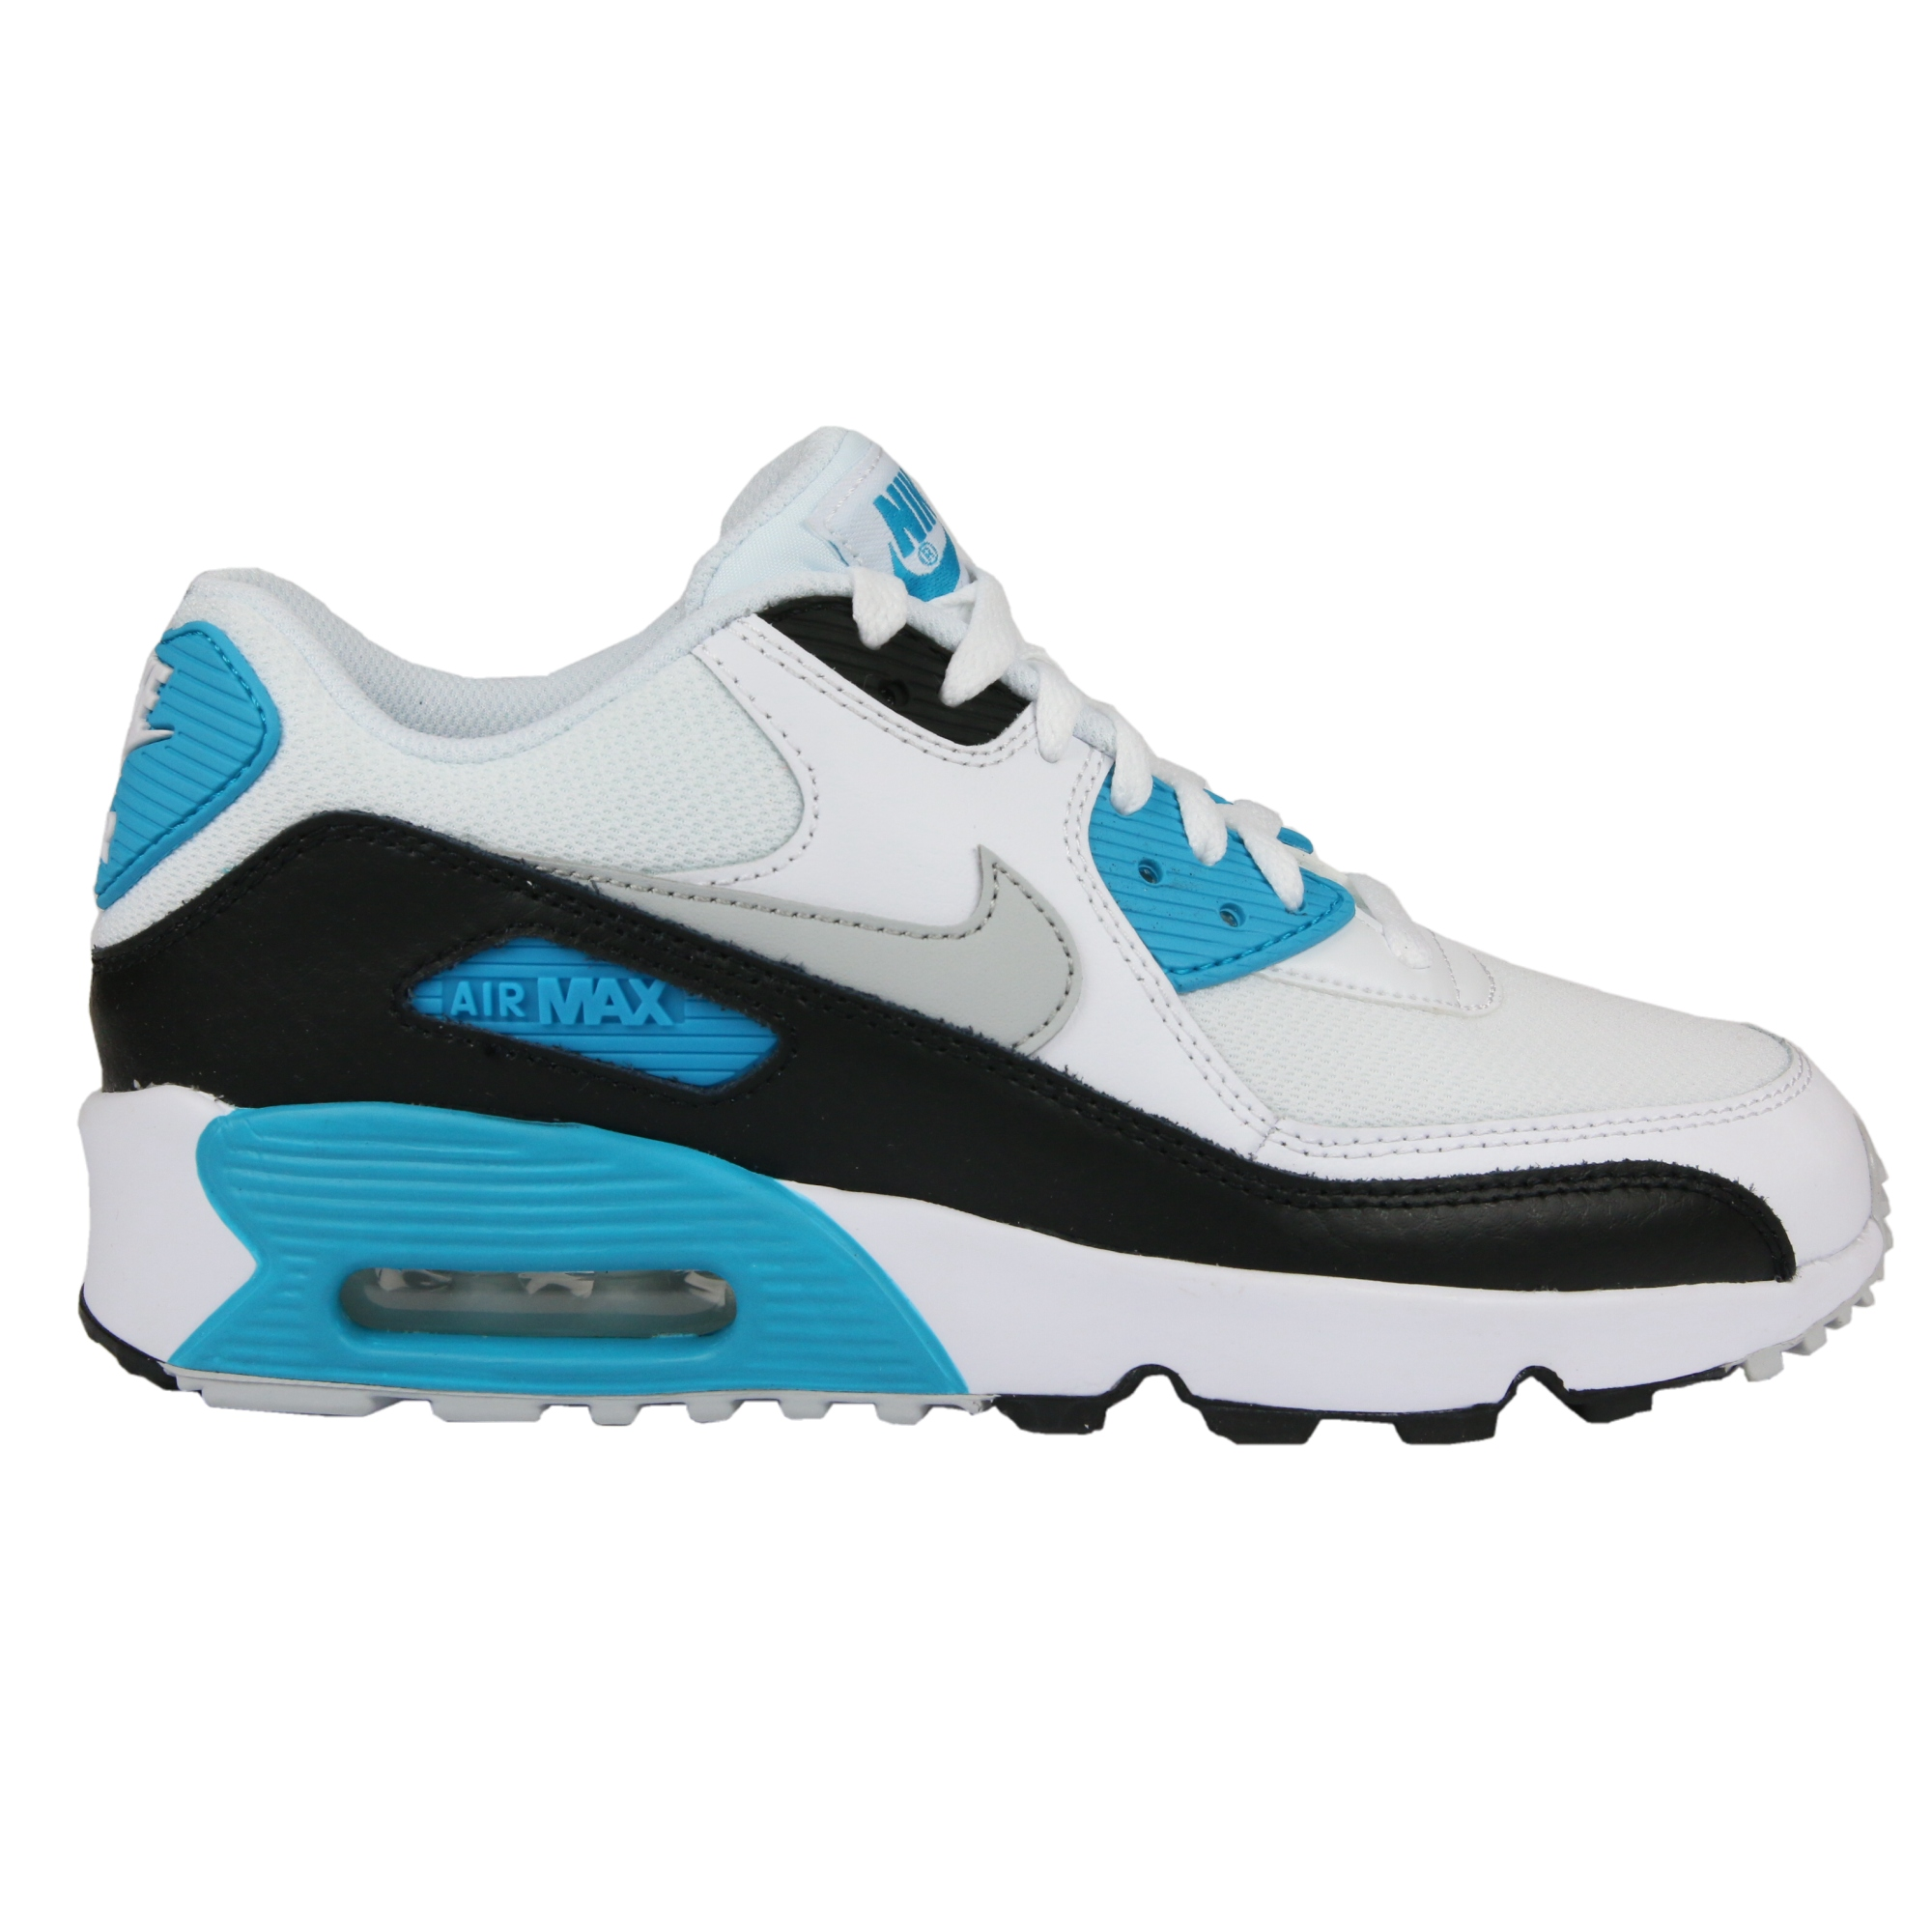 about nike air max 90 gs schuhe turnschuhe sneaker damen kinder. Black Bedroom Furniture Sets. Home Design Ideas